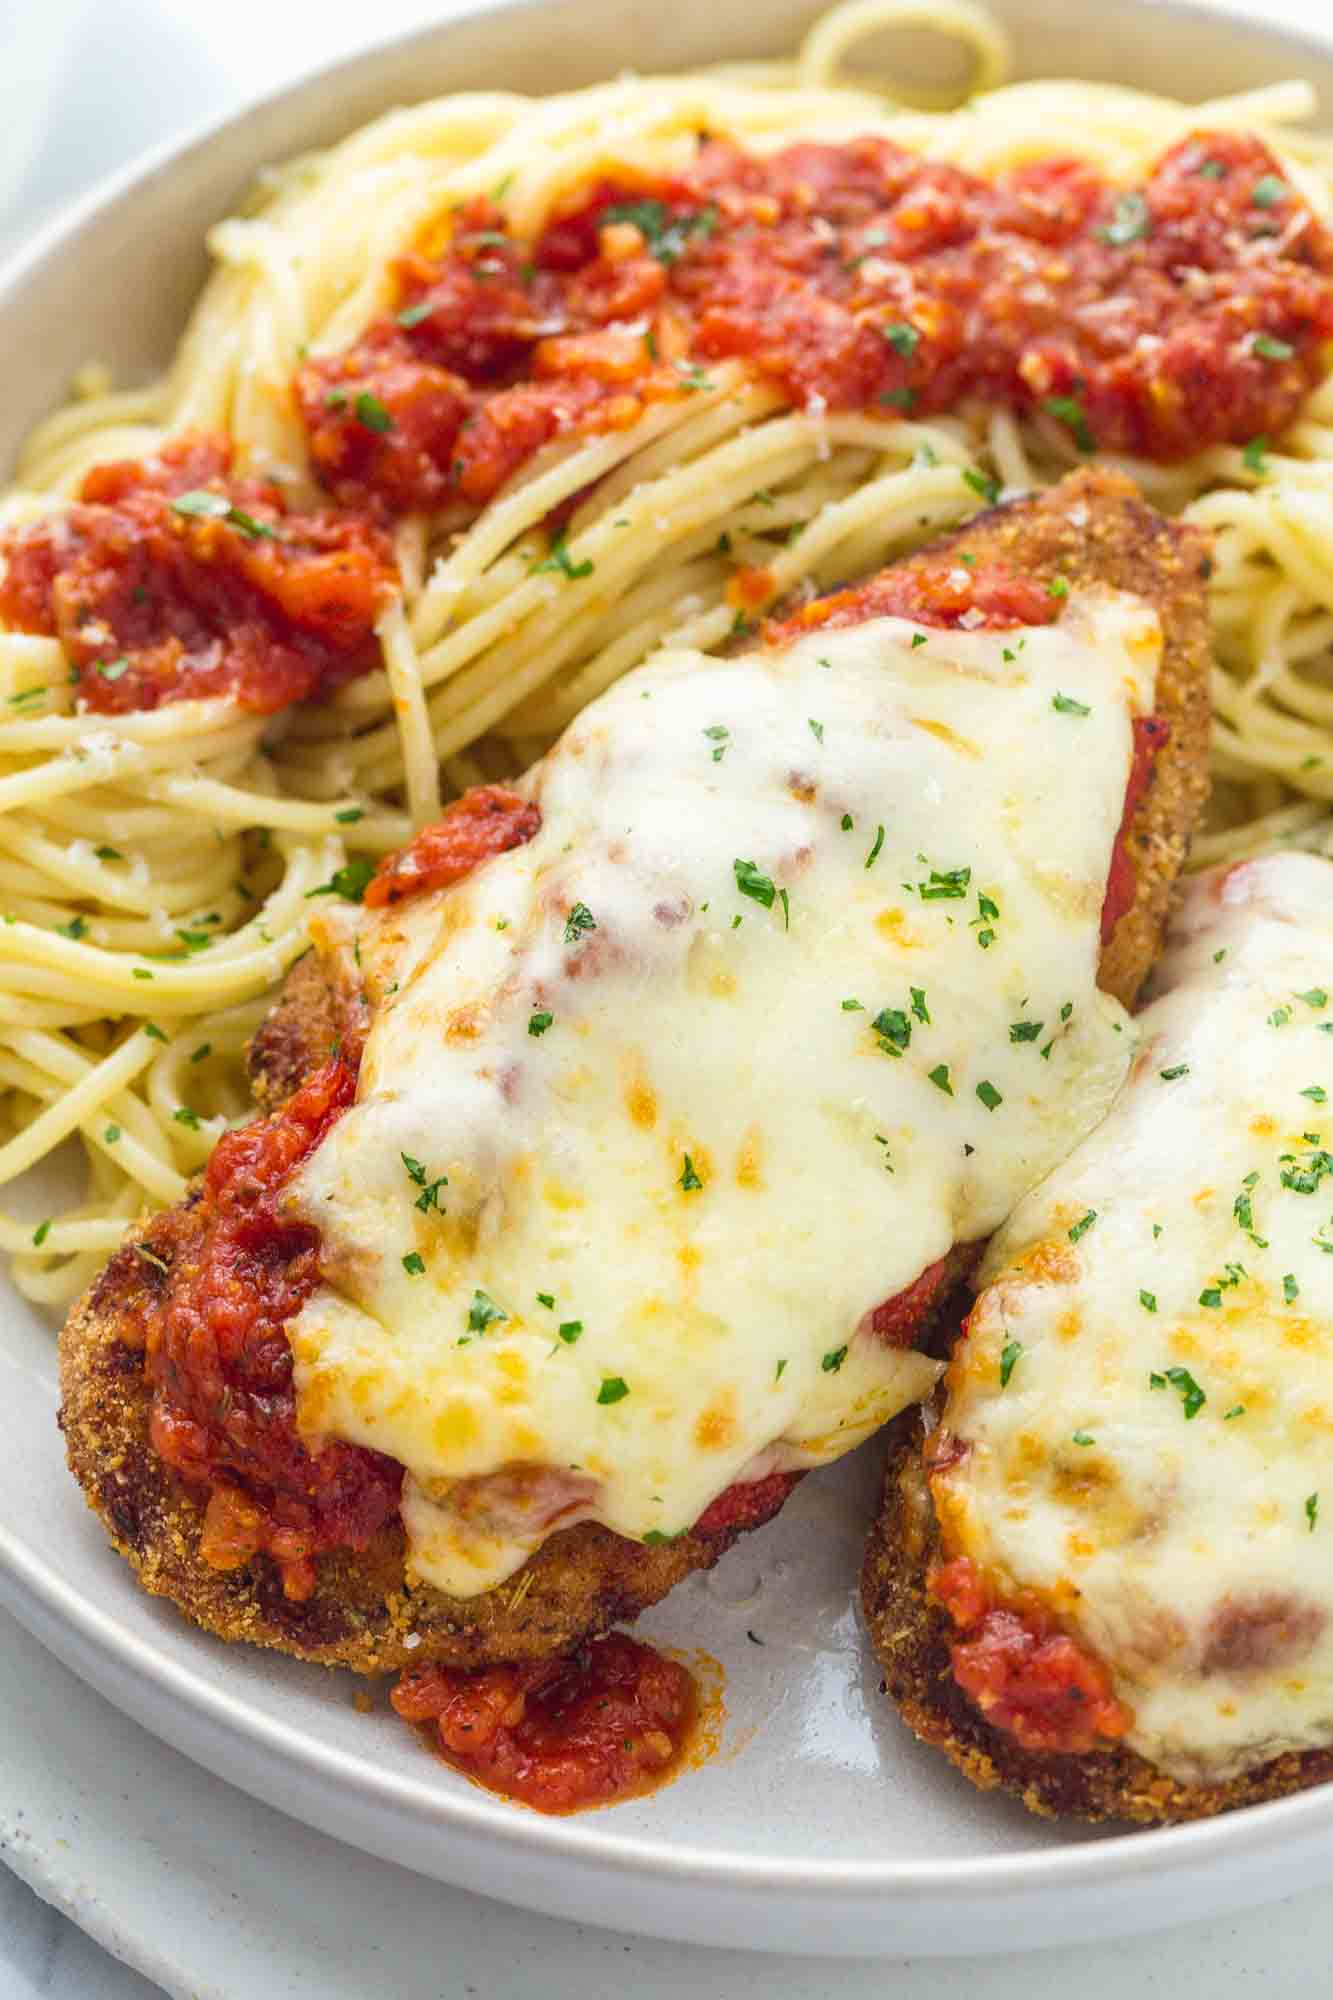 Chicken parmesan served with spaghetti and extra marinara